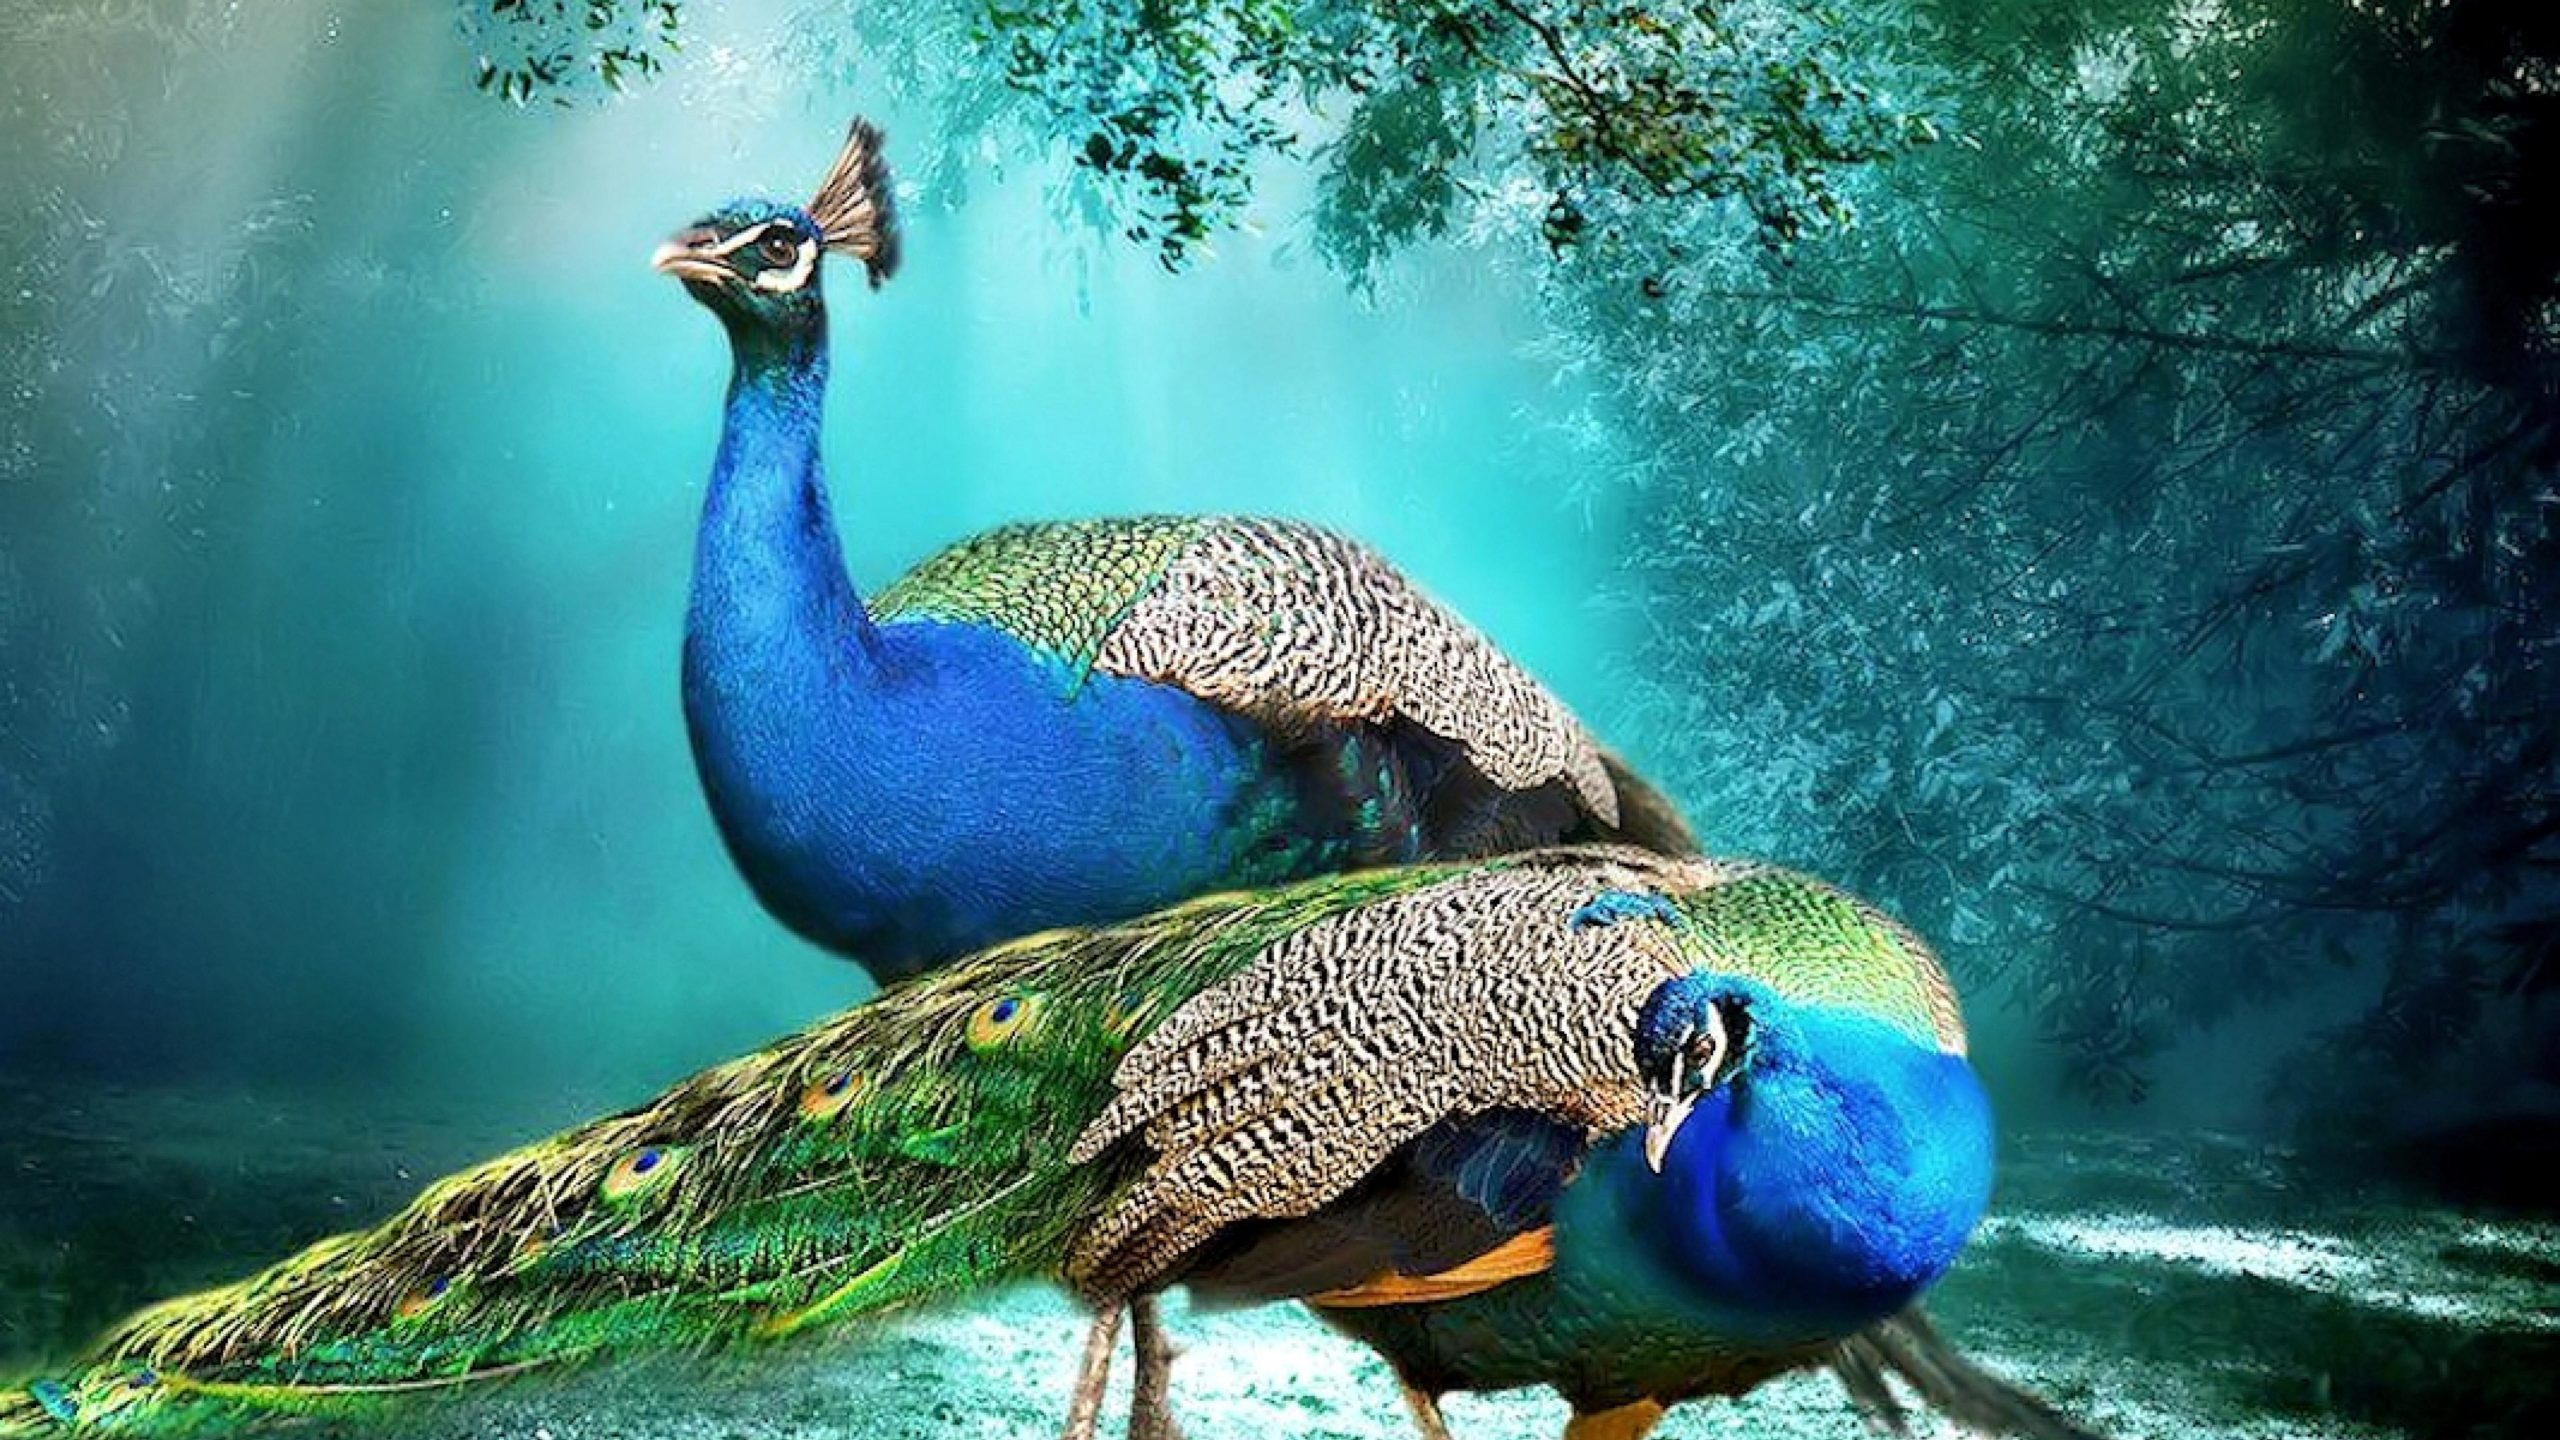 hd images of peacock